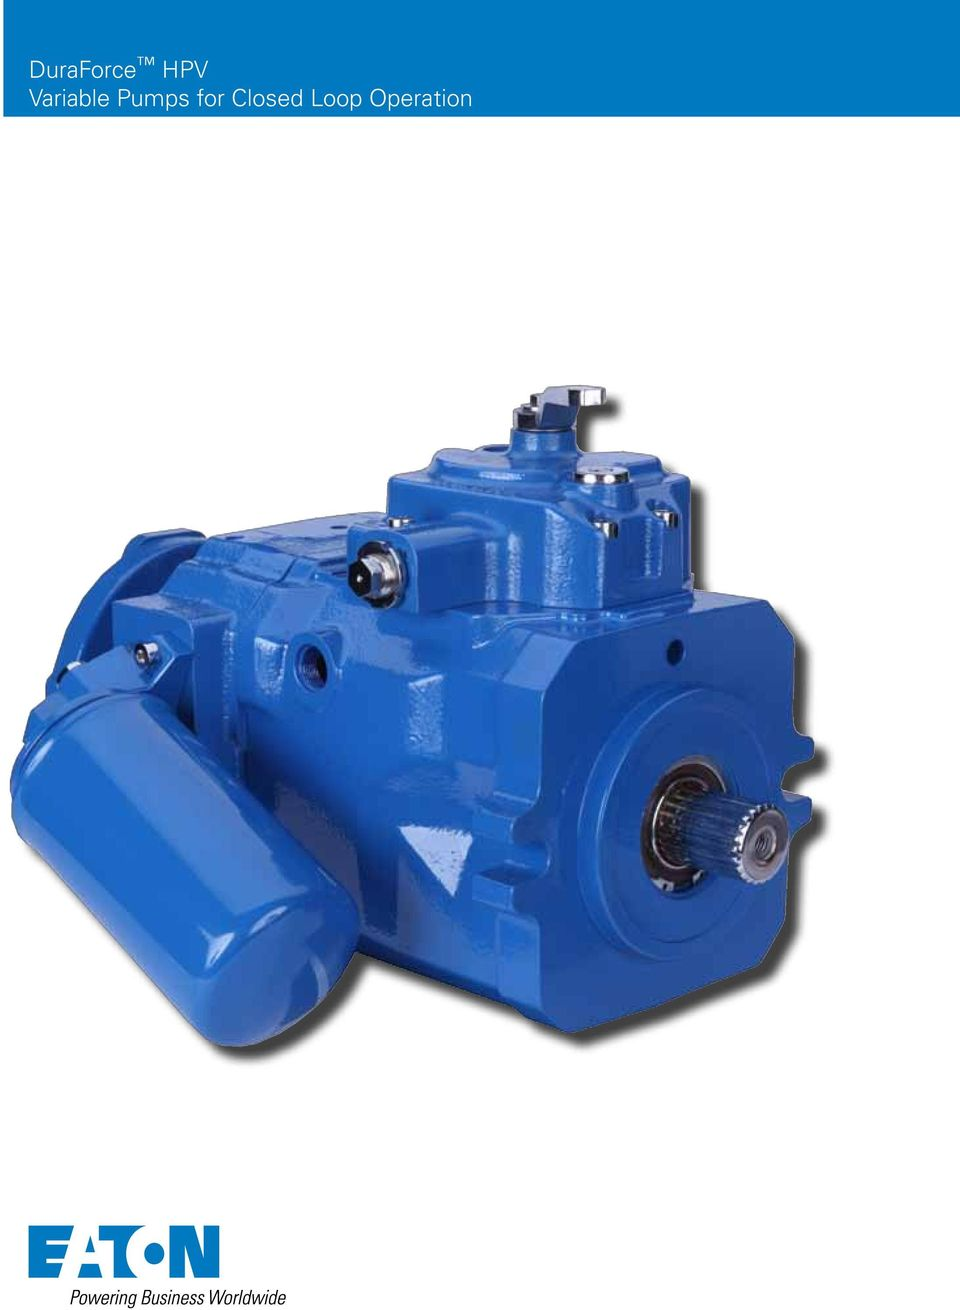 DuraForce HPV Variable Pumps for Closed Loop Operation - PDF